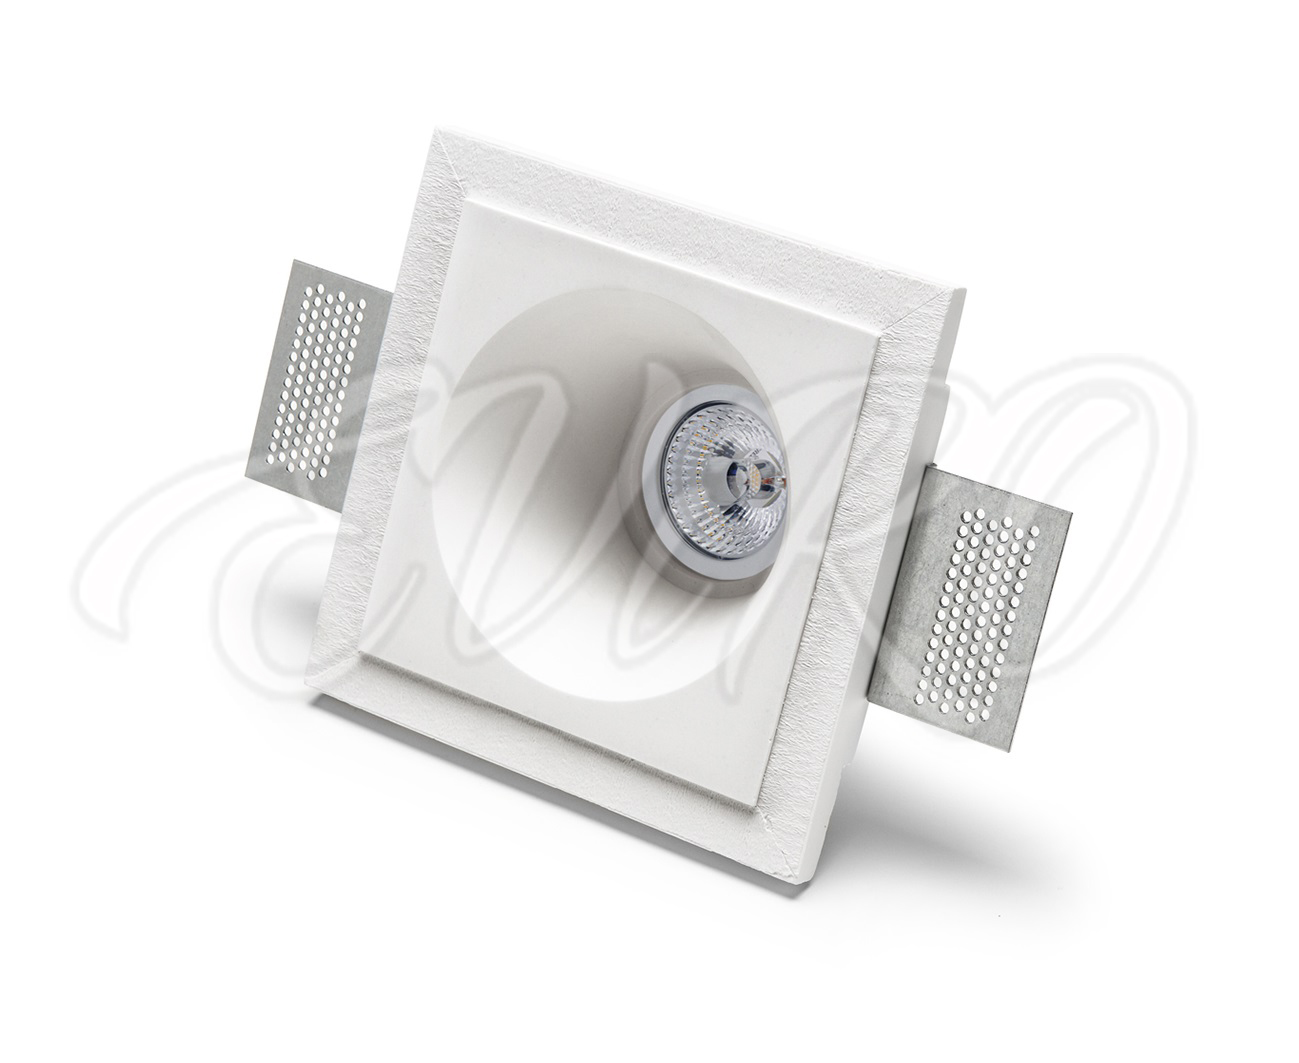 Built-in ceiling lighting fixture EViRO VPS 30